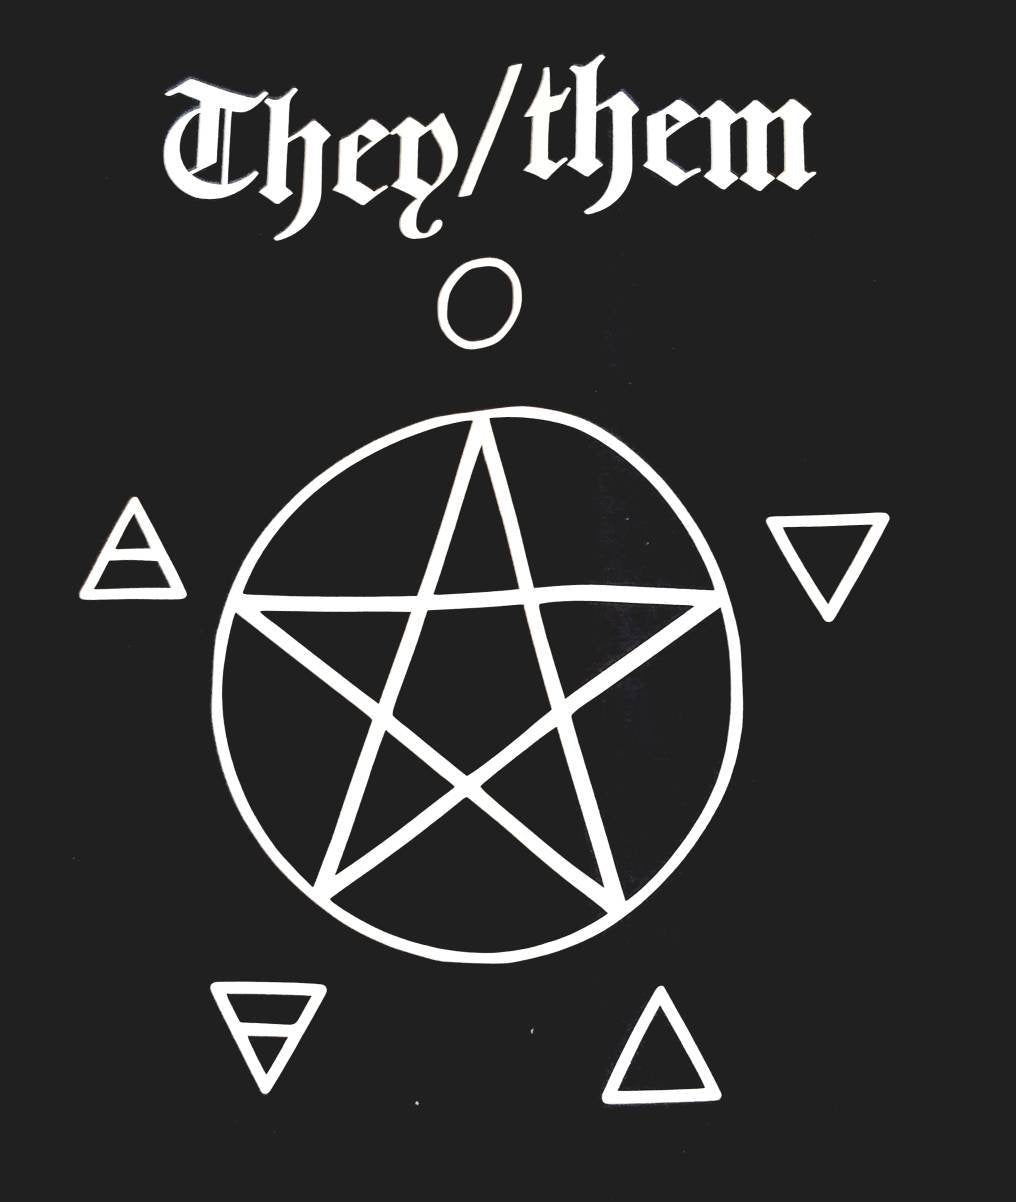 wicca,nonbinary,gender,occult,gothic,non-binary,pentagram,pentacle,elements,goth,satanic,they_them,pronoun